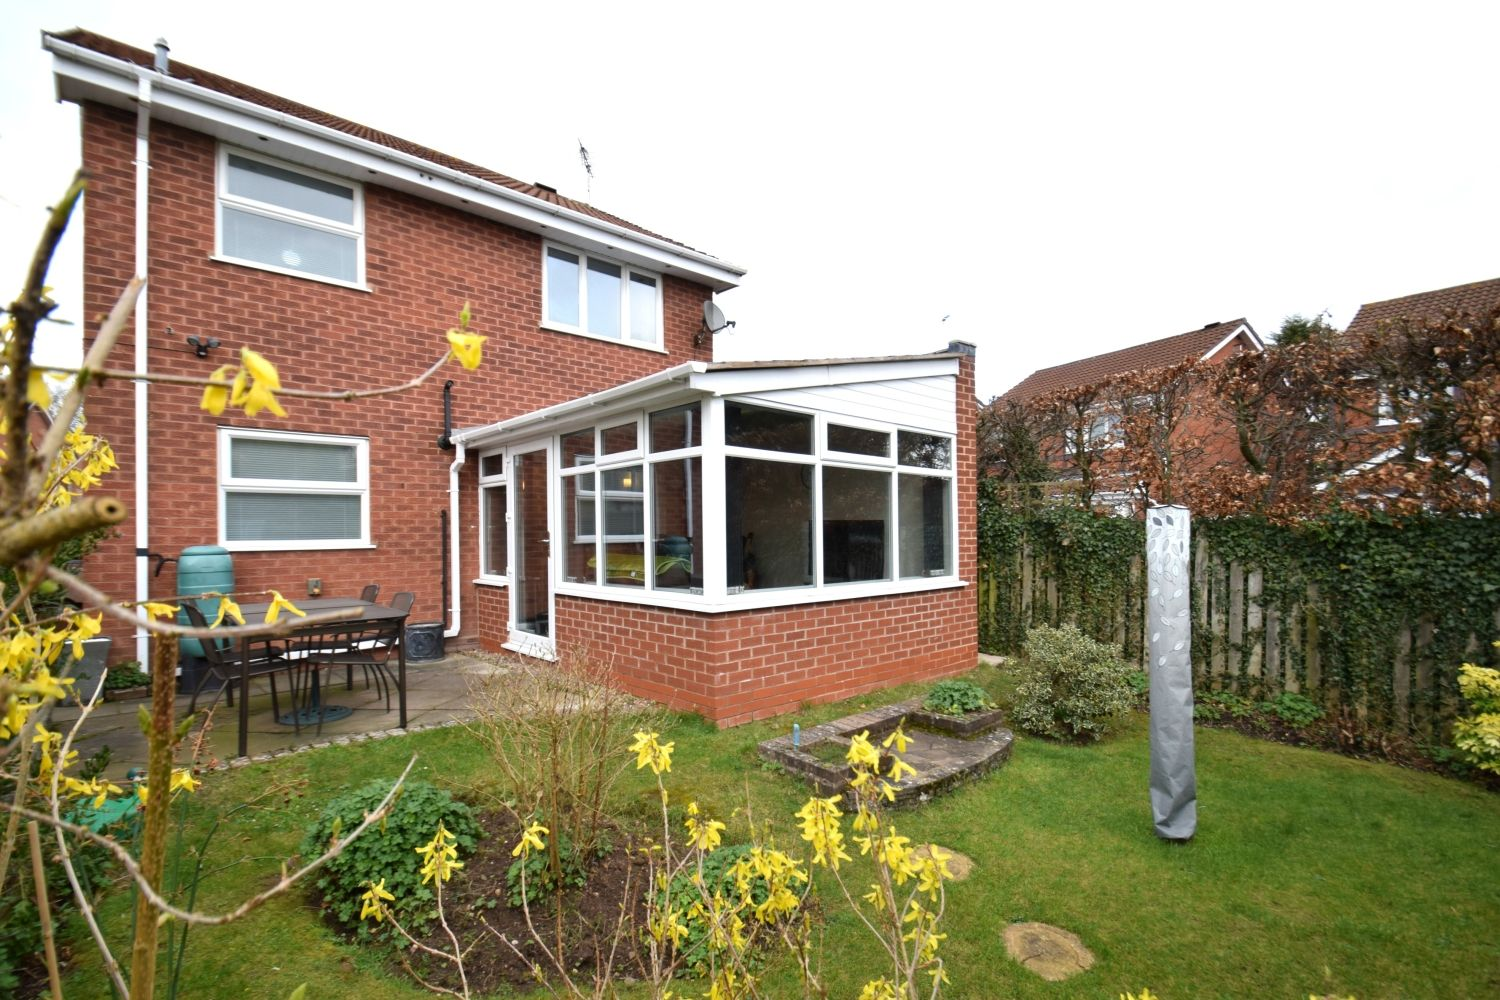 3 bed detached for sale in Foxes Close, Blackwell, B60 22